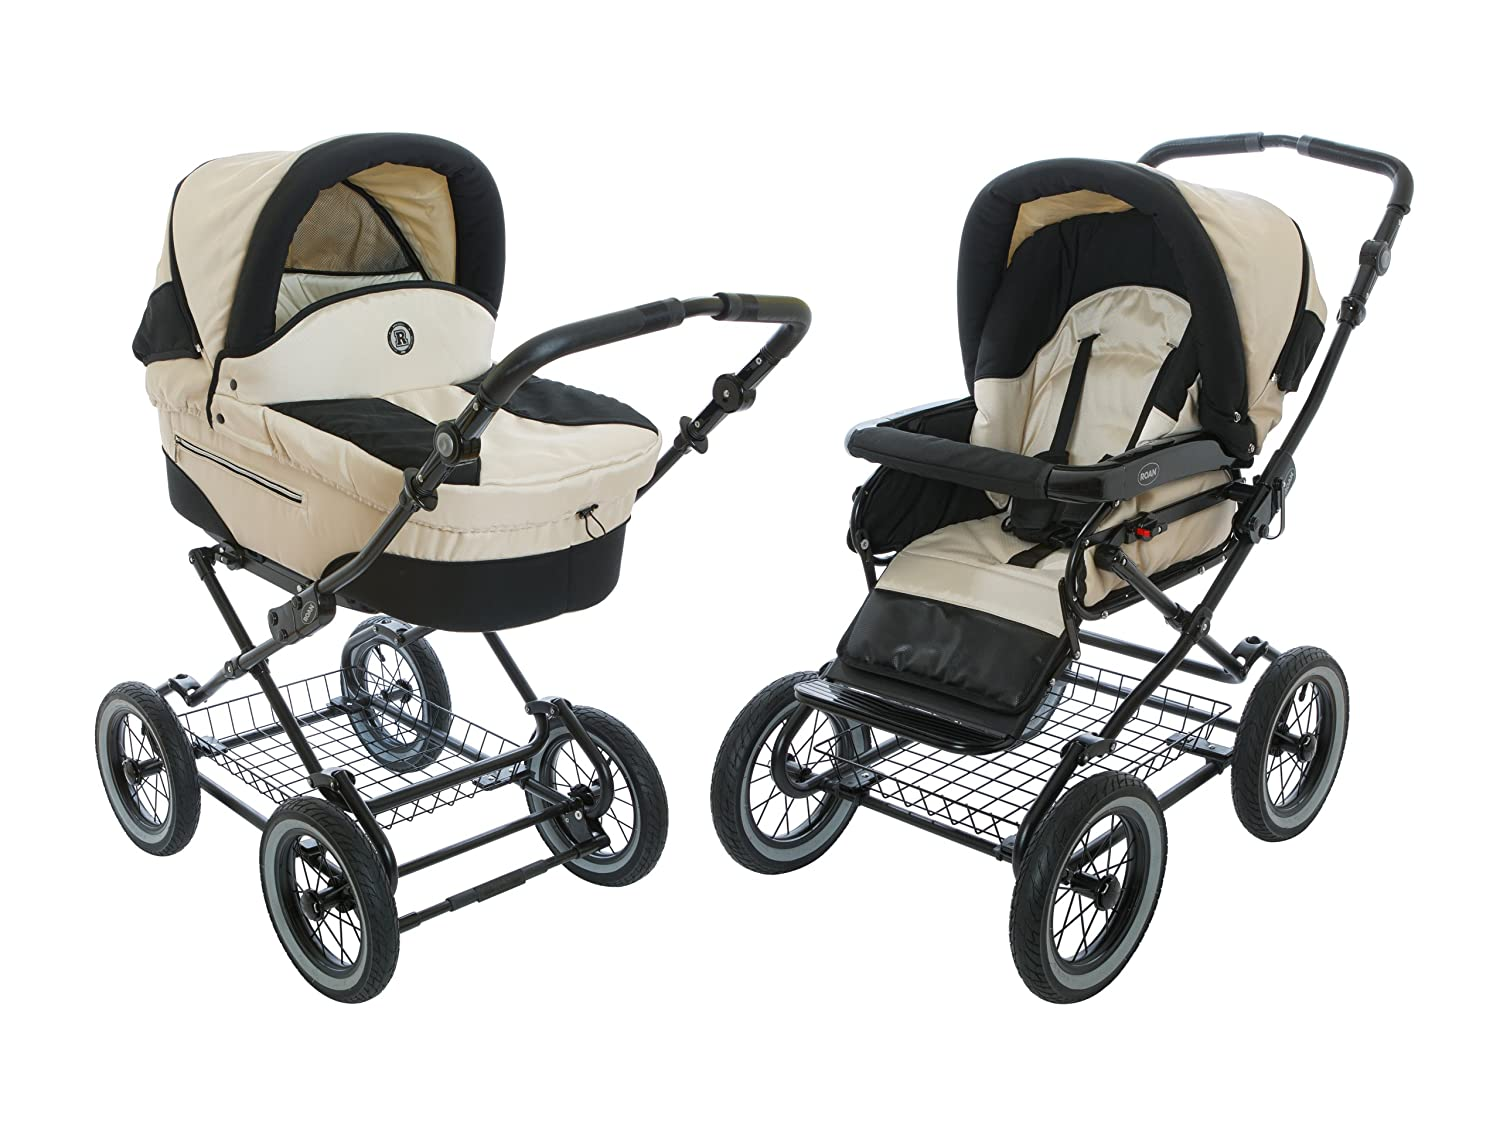 Roan Rocco Classic Pram Stroller 2-in-1 with Bassinet and Seat Unit – Pearl